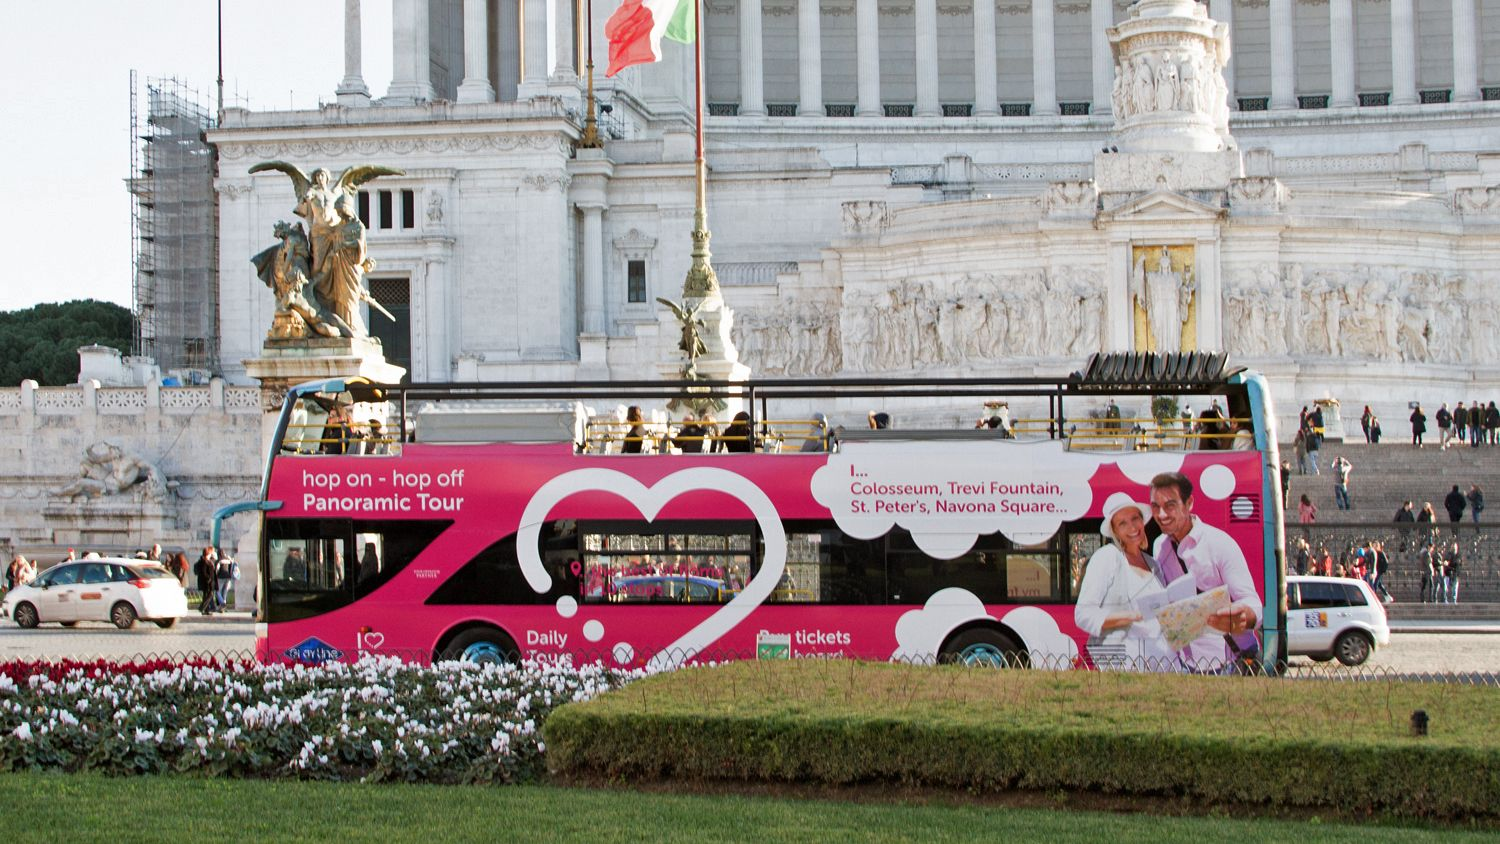 hop on hop off bus on tour in rome